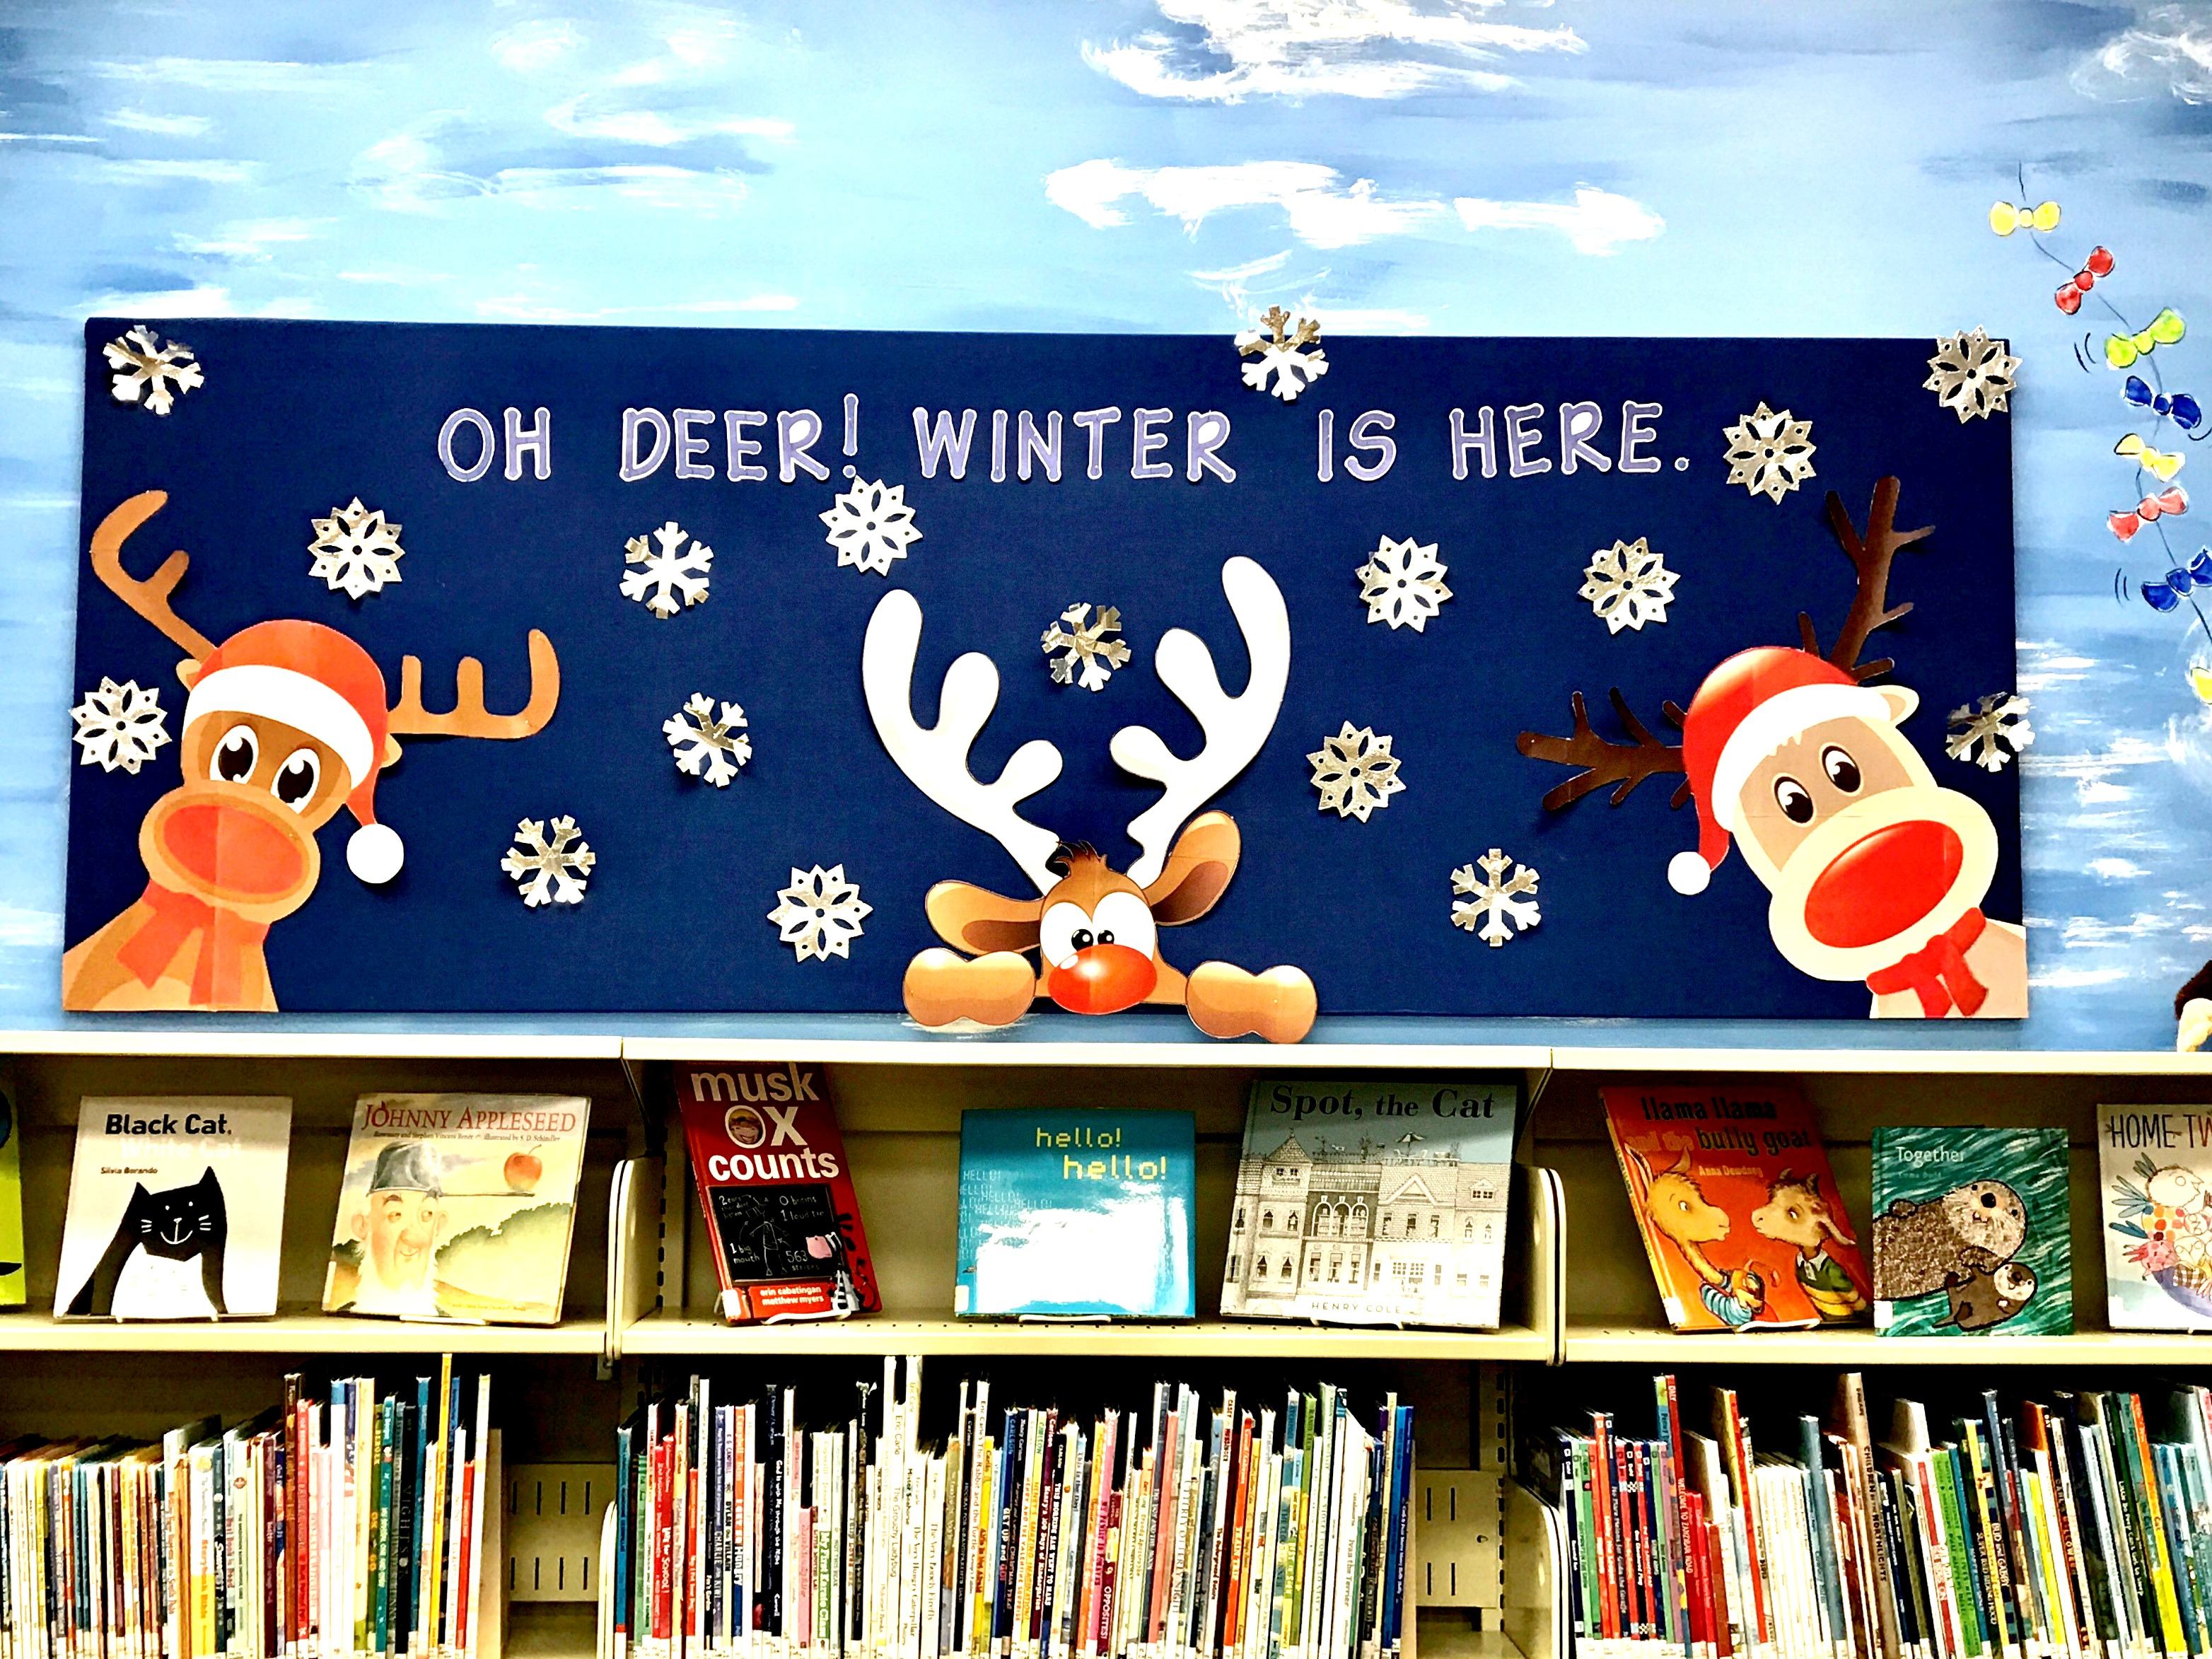 Winter bulletin board ideas for teachers! I have rounded up so fun winter-themed bulletin board ideas for your classroom! These would work great as December bulletin boards or January bulletin boards.